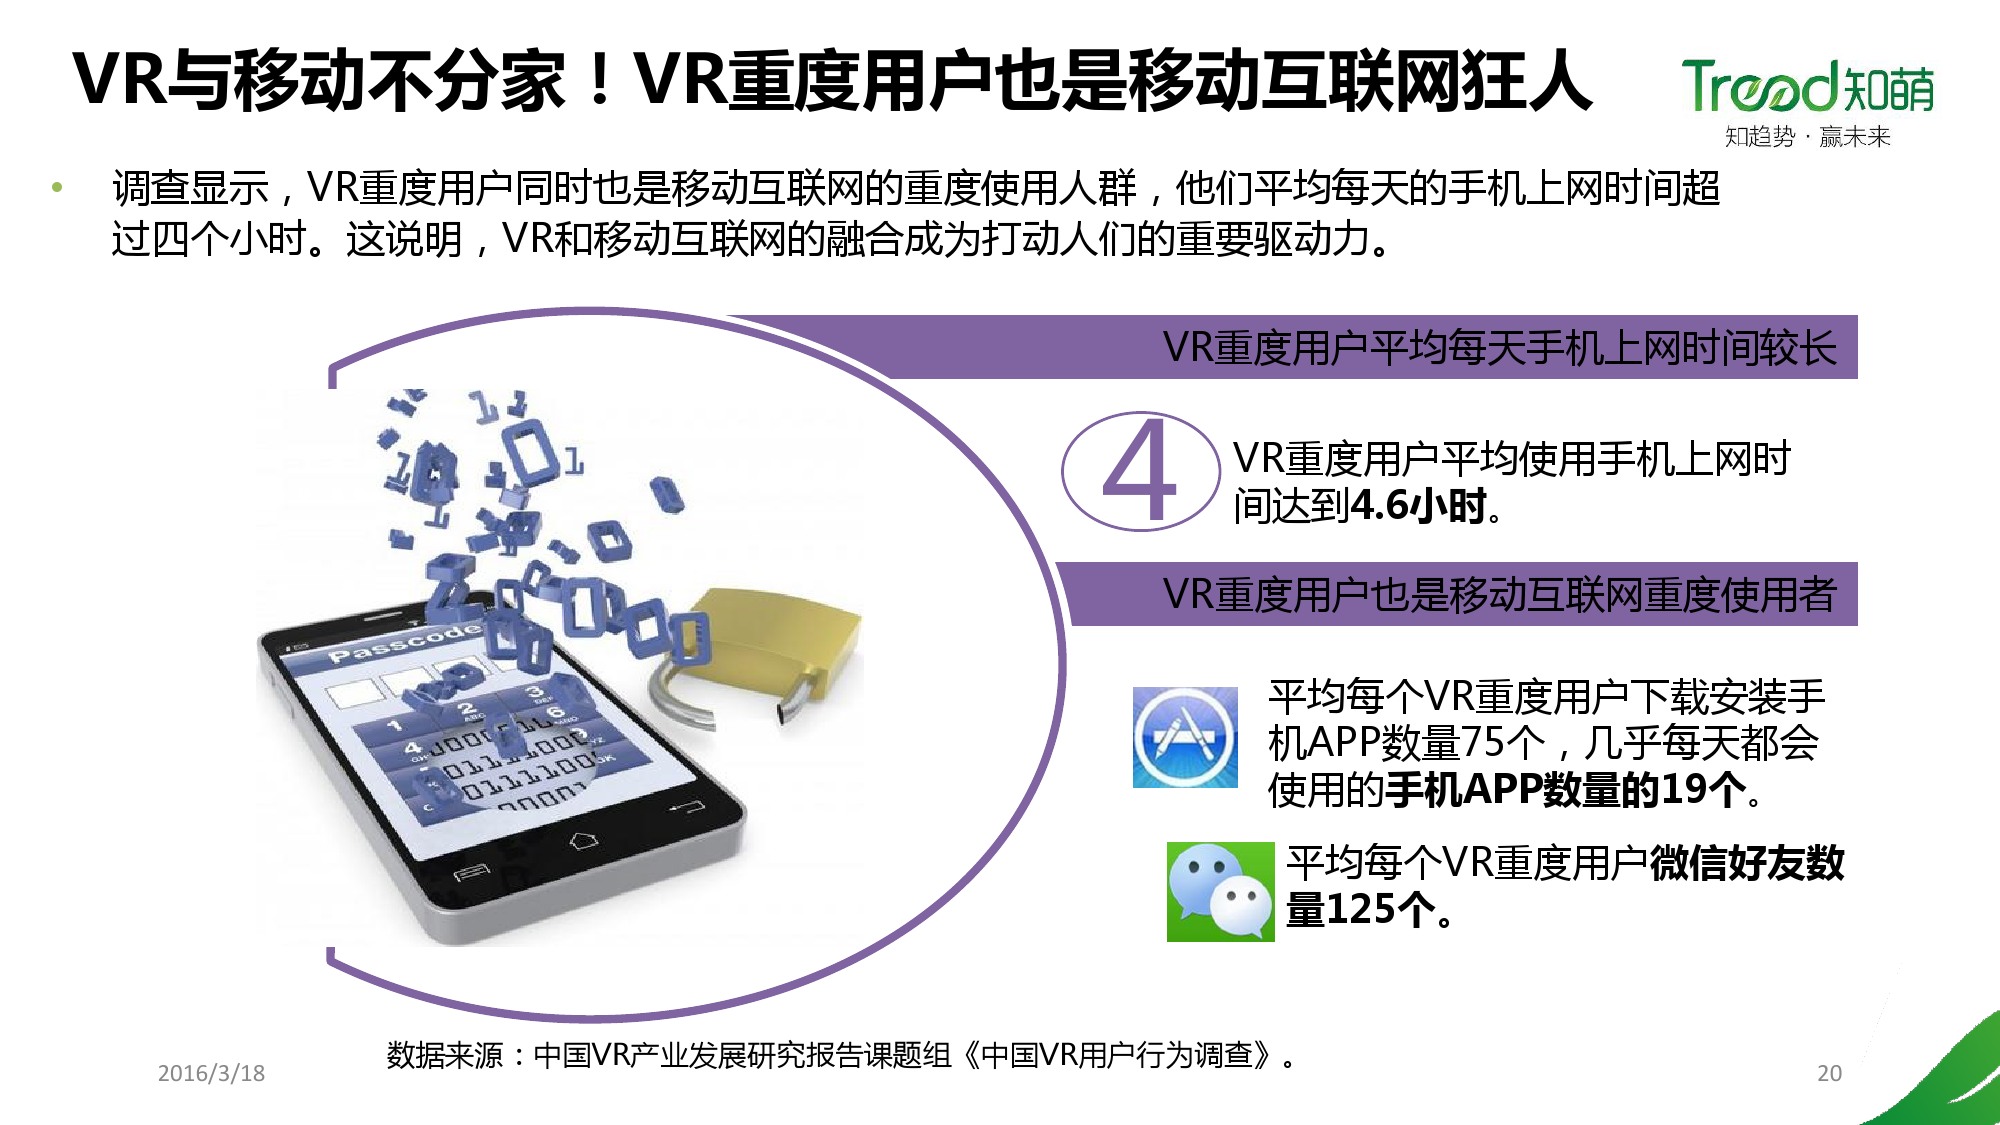 China VR user behavior research report _000020